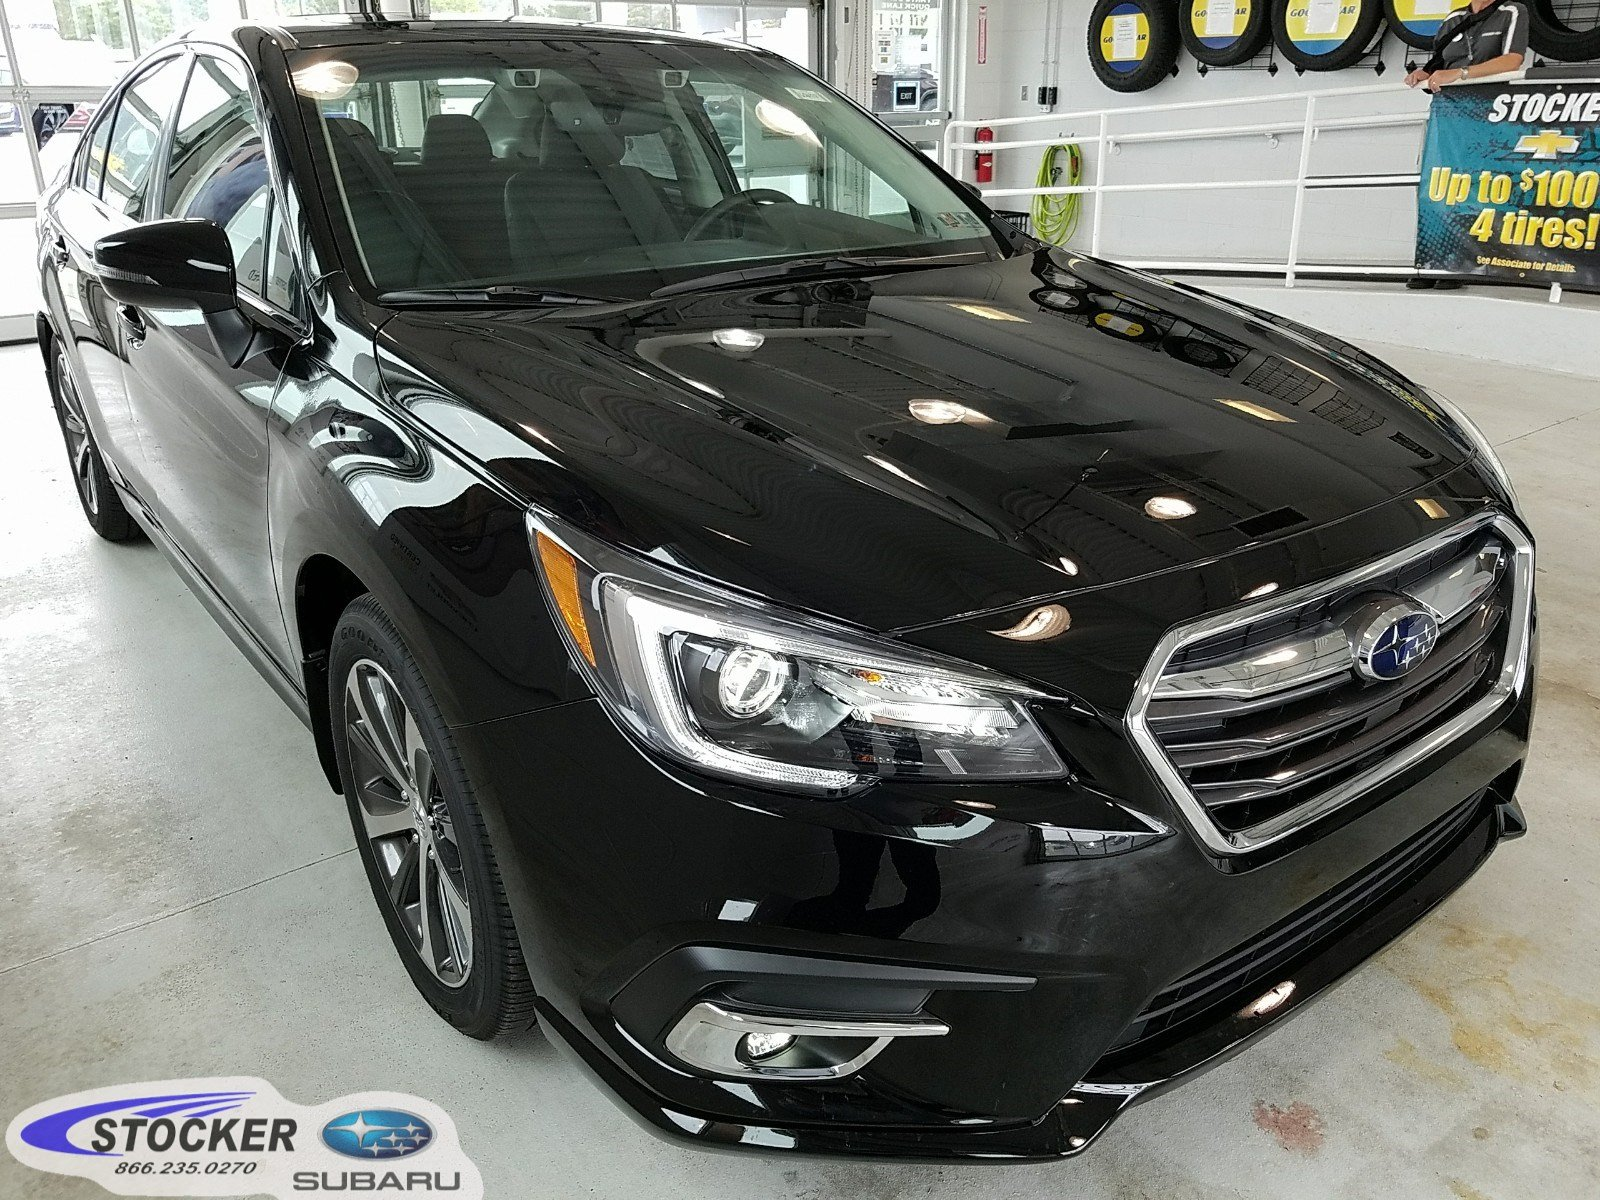 2019 Subaru Legacy 2.5i Limited Sedan for sale in State College, PA